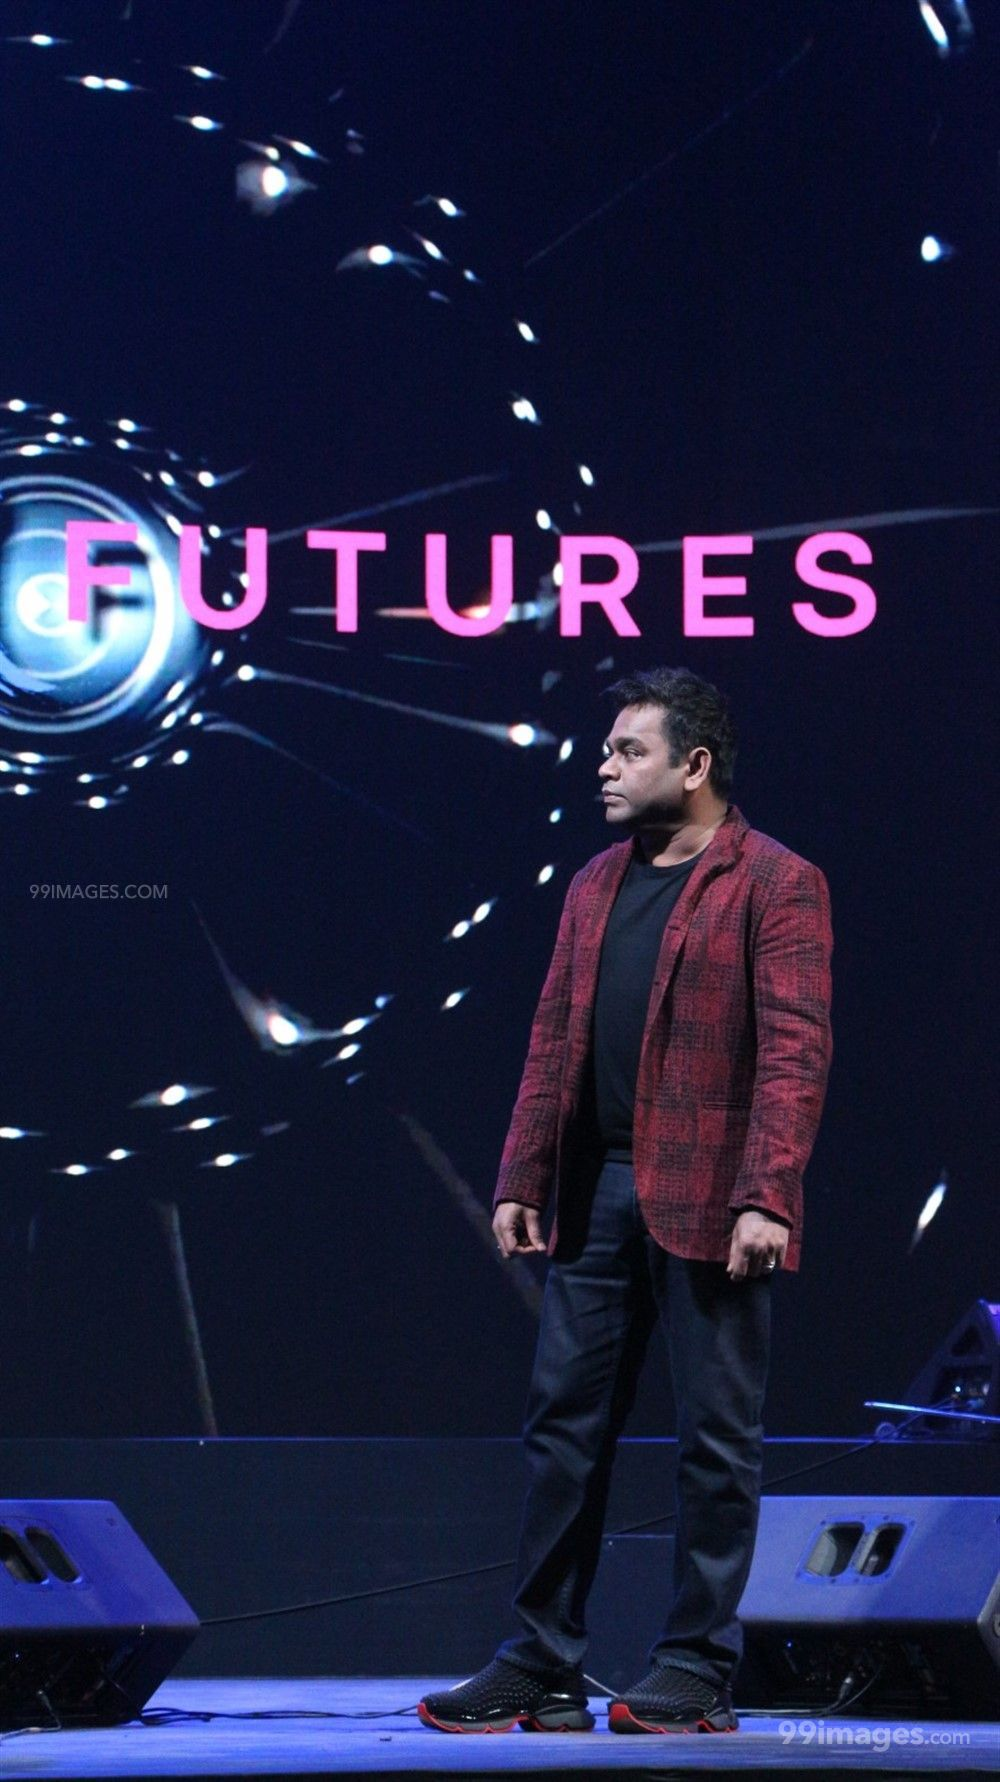 A. R. Rahman HD Wallpapers (Desktop Background / Android / iPhone) (1080p, 4k) (160348) - A. R. Rahman